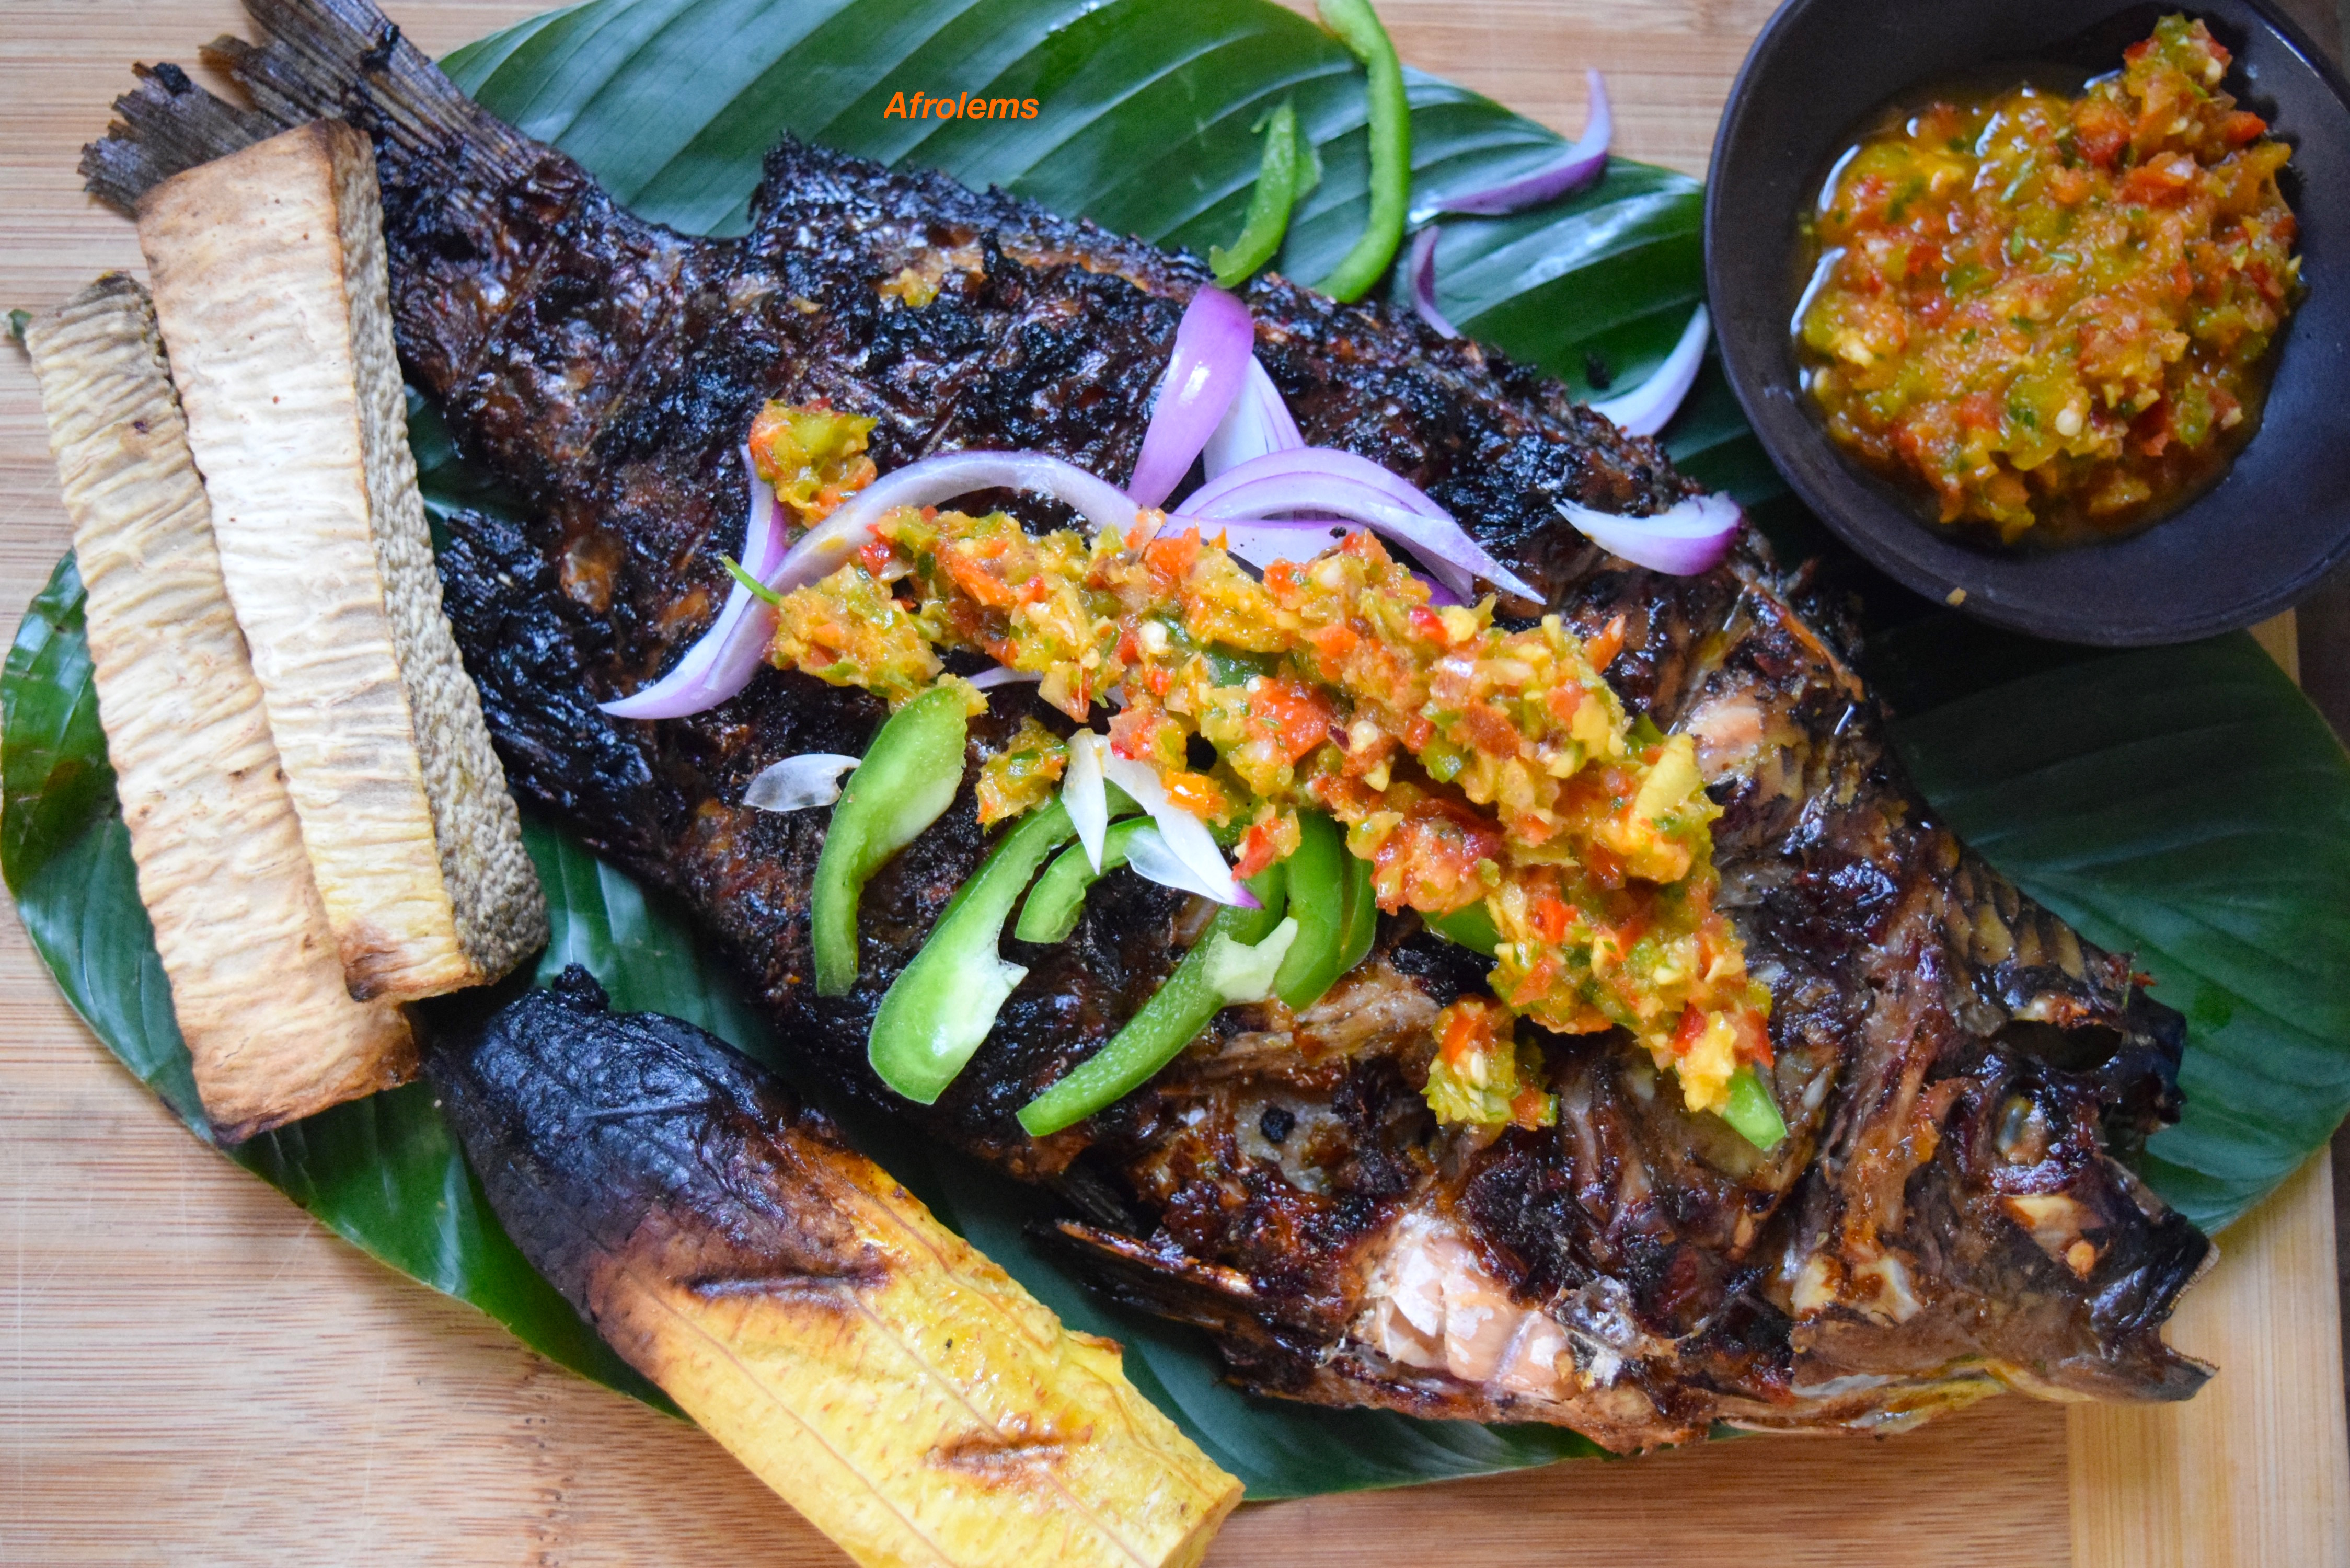 Nigerian barbecue fish recipe afrolems nigerian food blog watch a video tutorial on how to make this dish on our youtube channel and dont forget to subscribe forumfinder Choice Image